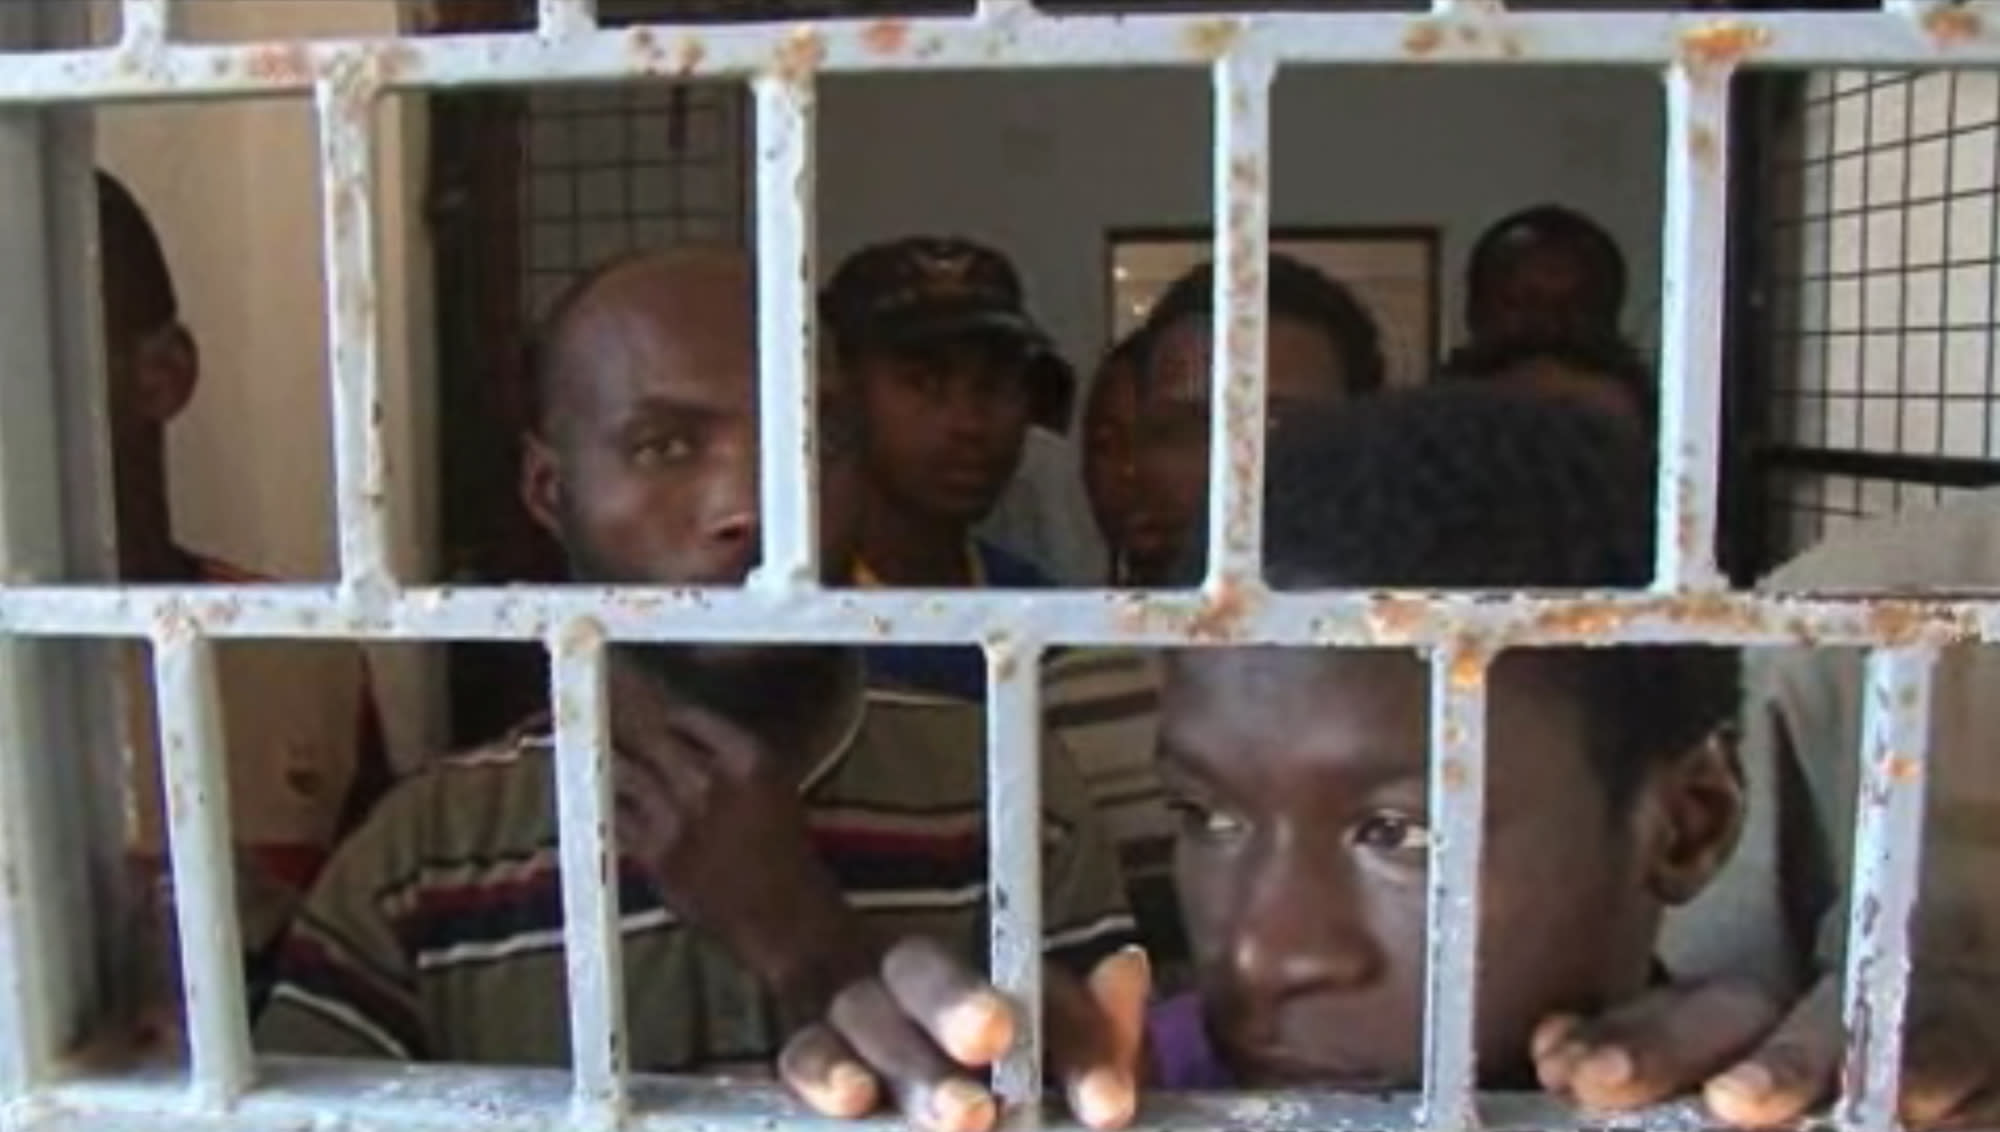 In this image made from Monday, Oct. 14, 2013 video, African migrants look through bars of a locked door at Sabratha migrant detention center for men in Sabratha, Libya. Libya's chaos in the two years following the overthrow of dictator Moammar Gadhafi has turned the country into a prime springboard for tens of thousands of migrants, mainly from Africa, trying to reach Europe in dangerous sea voyages. (AP Photo/AP Video)